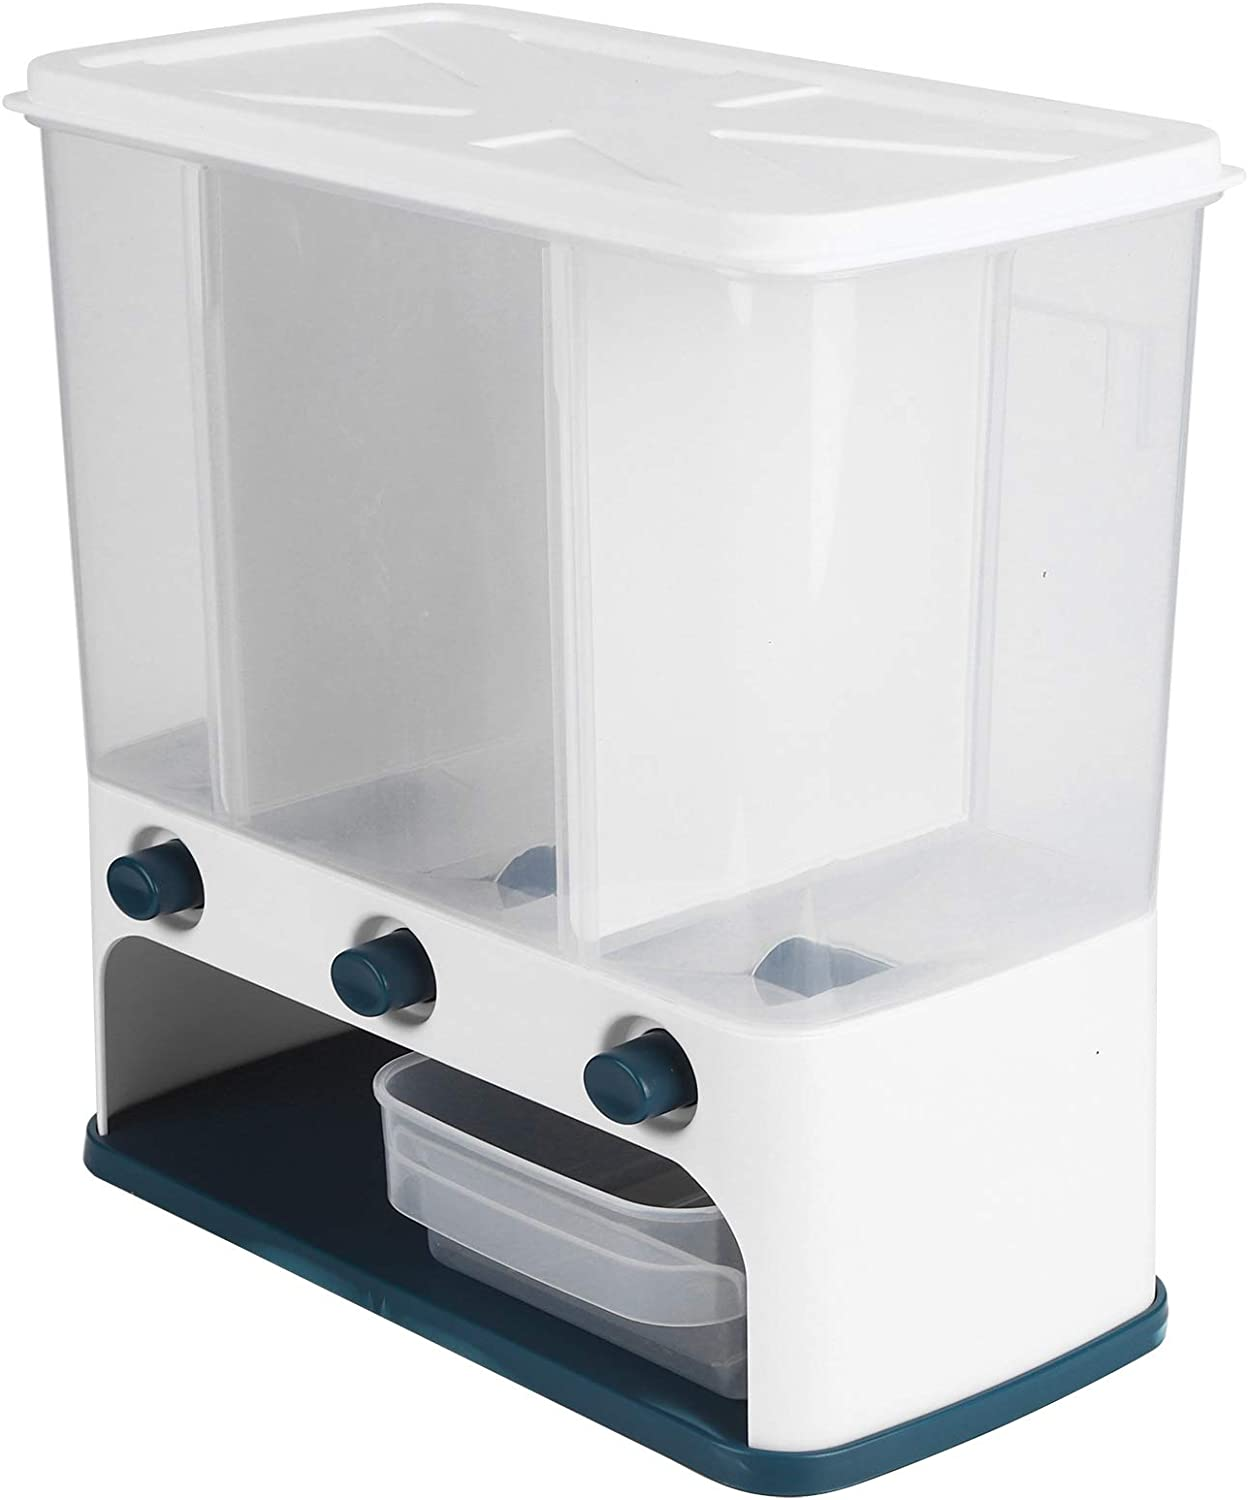 Wall Los Angeles Mall Cereal Ranking integrated 1st place Container Dispenser Dry Food Dr Lid